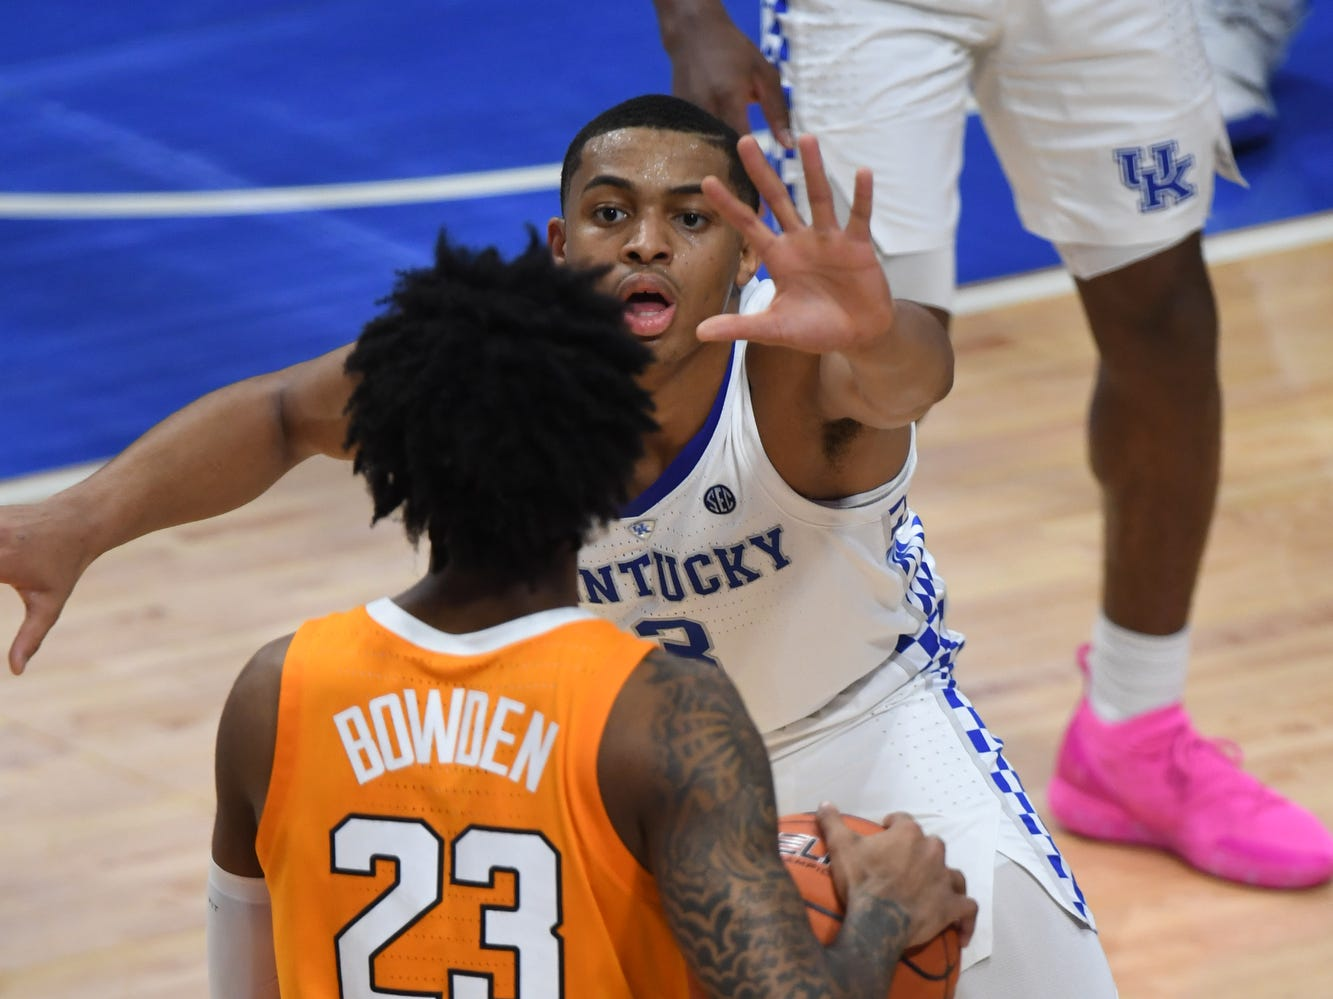 UK G Keldon Johnson defends the ball during the University of Kentucky mens basketball game against Tennessee at Rupp Arena in Lexington, Kentucky on Saturday, February 16, 2019.